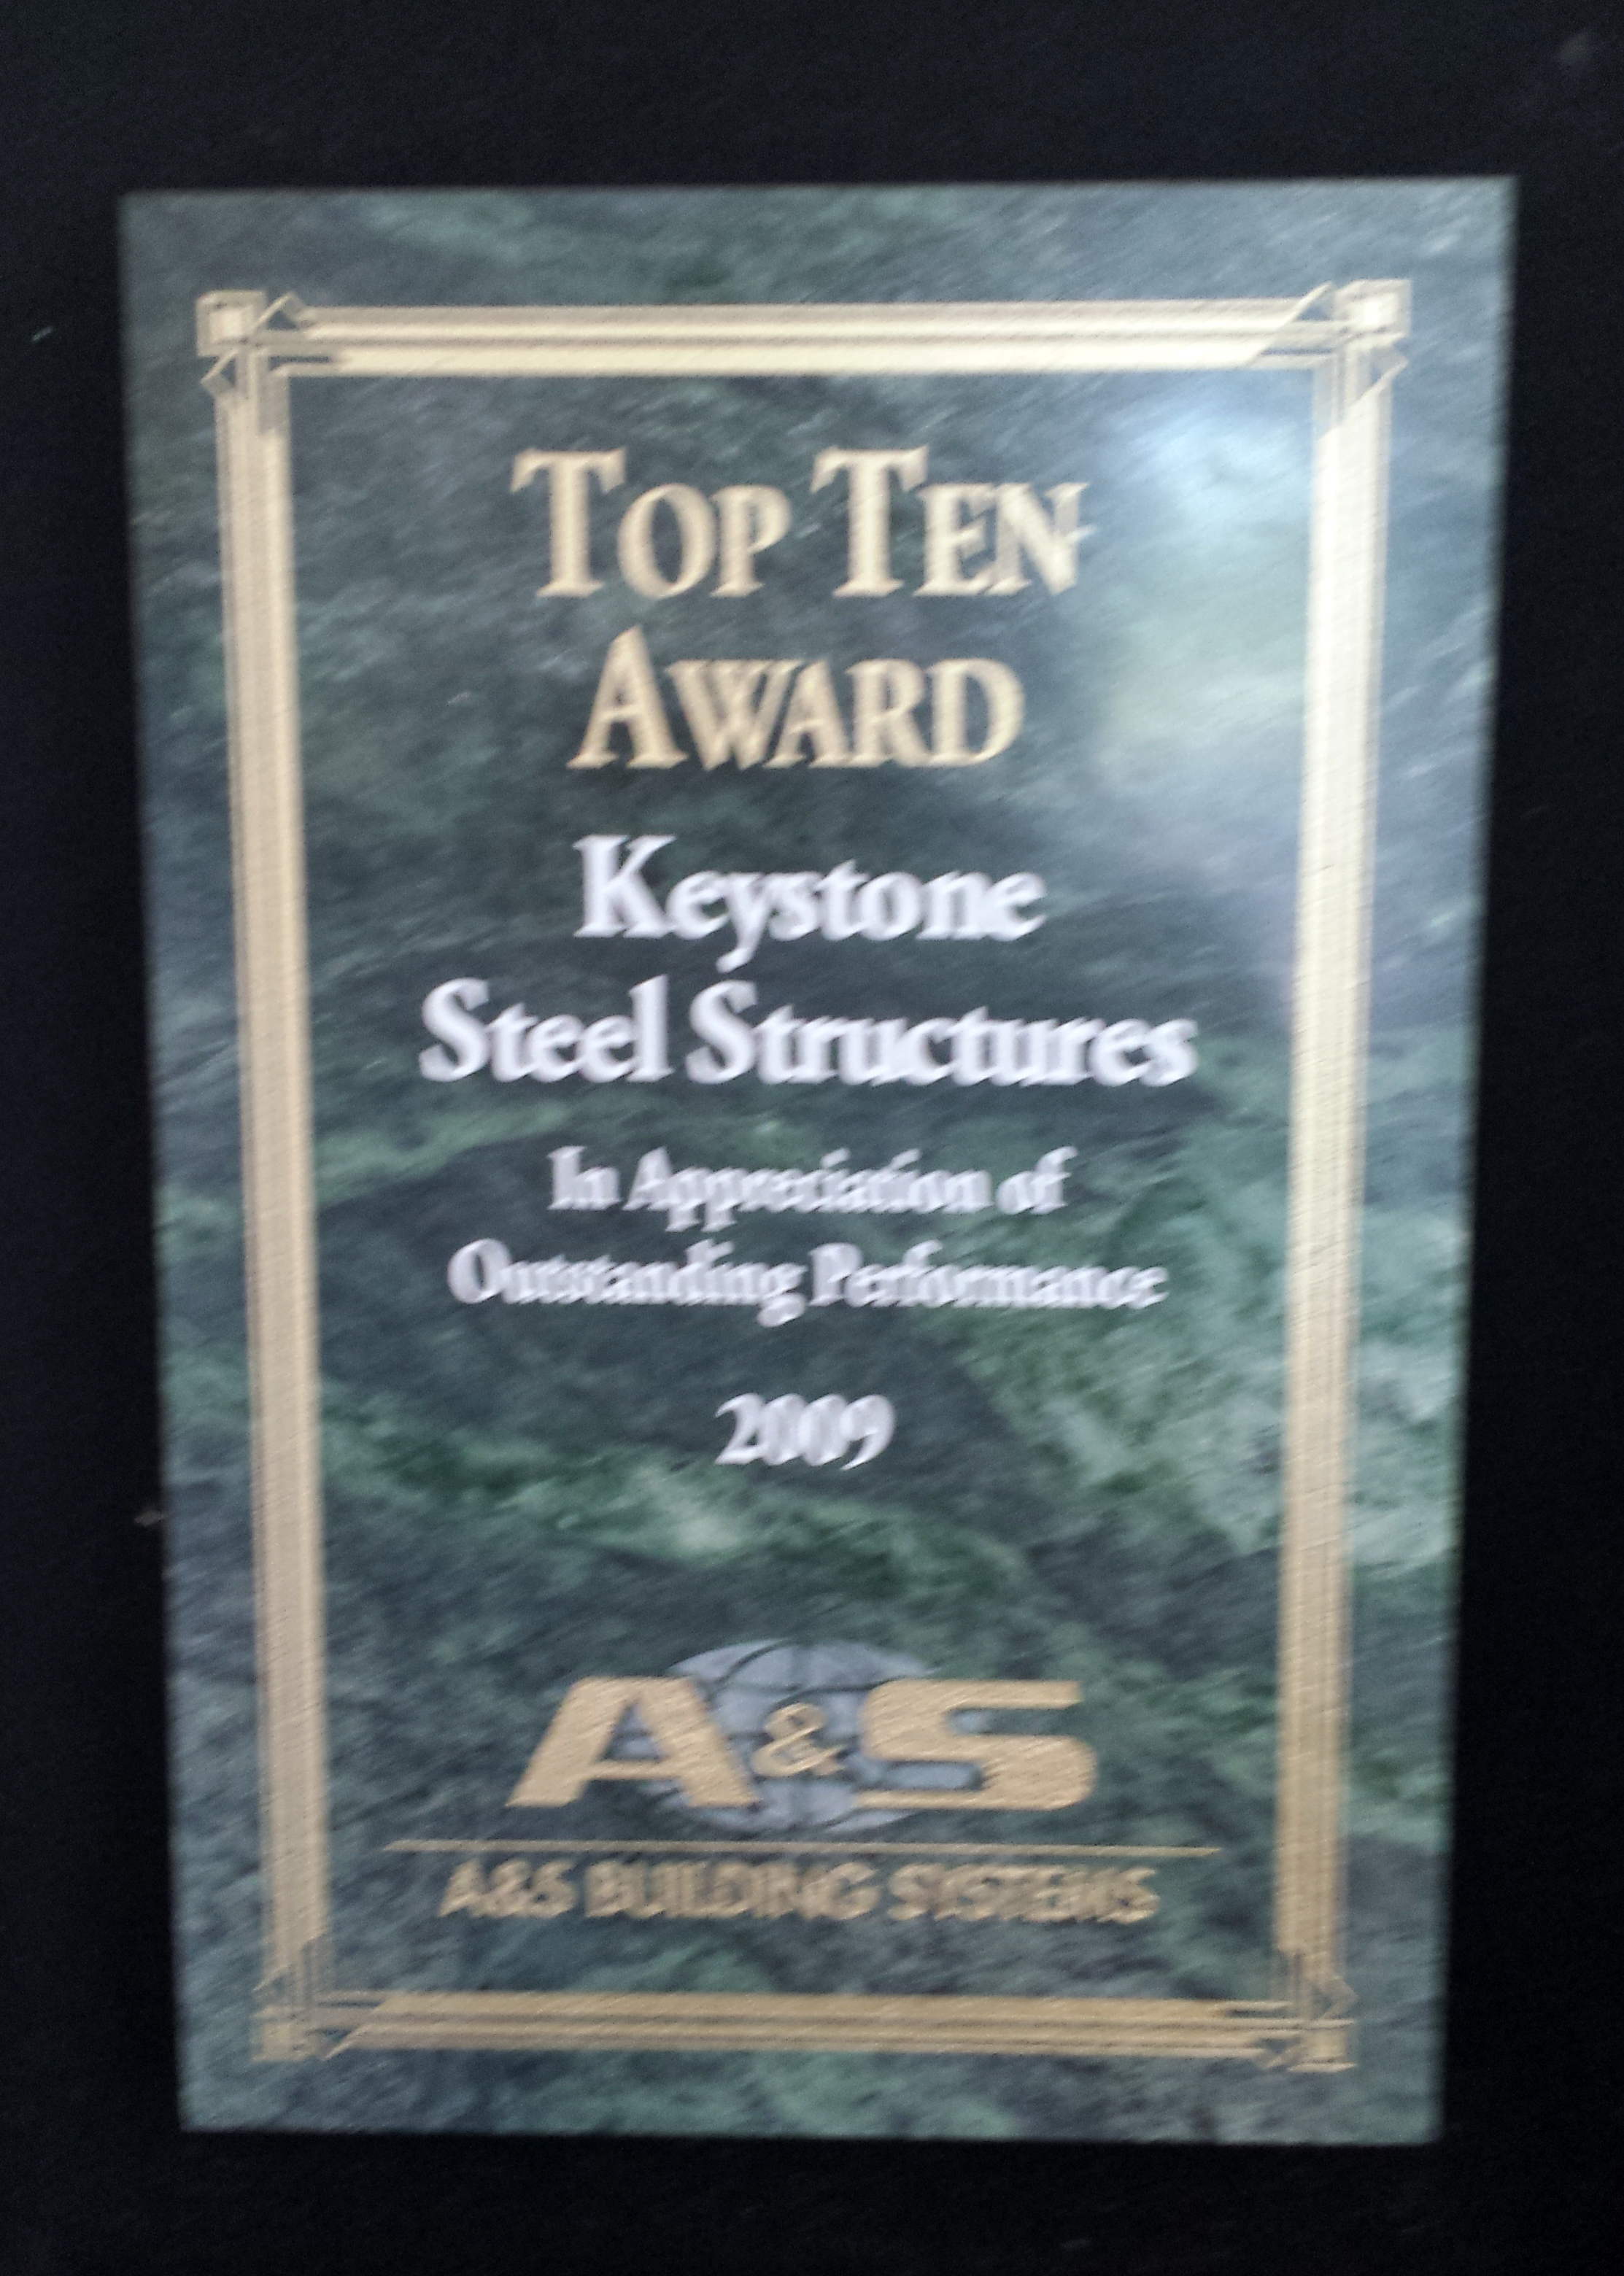 2009 Top Ten Award